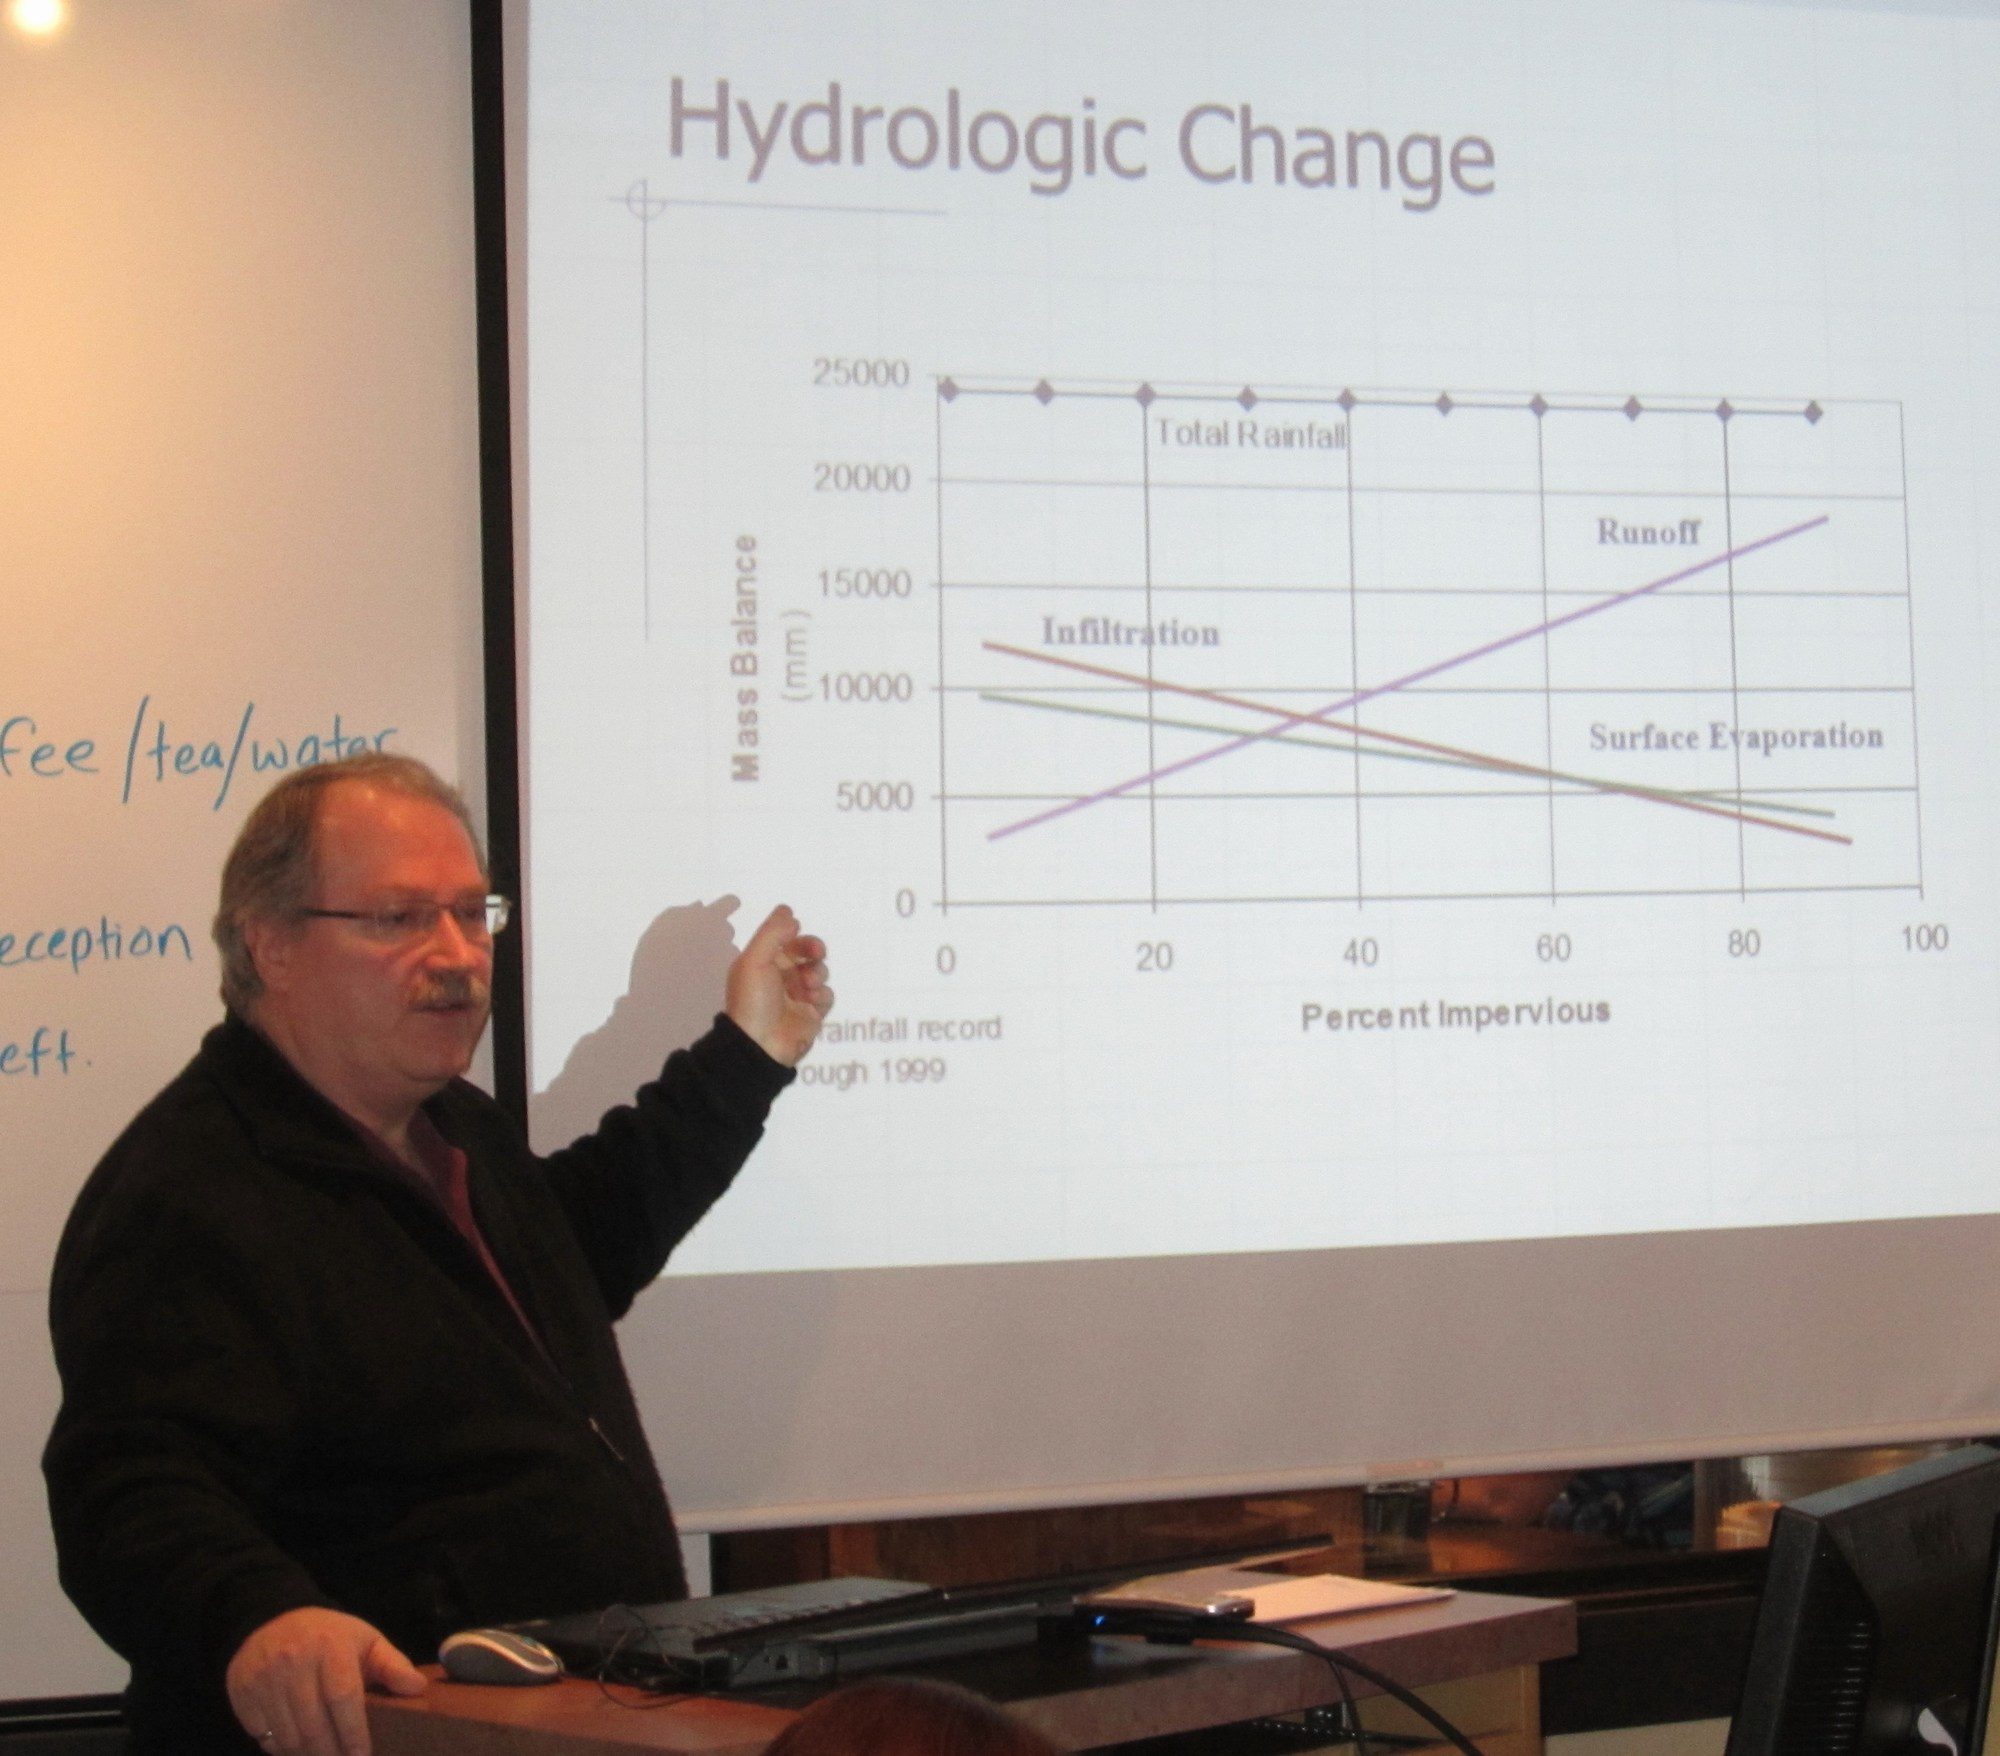 March 2012 - Jim Dumont teaches hydrology fundamentals at a training workshop hosted by the Okanagan Basin Water Board in Kelowna